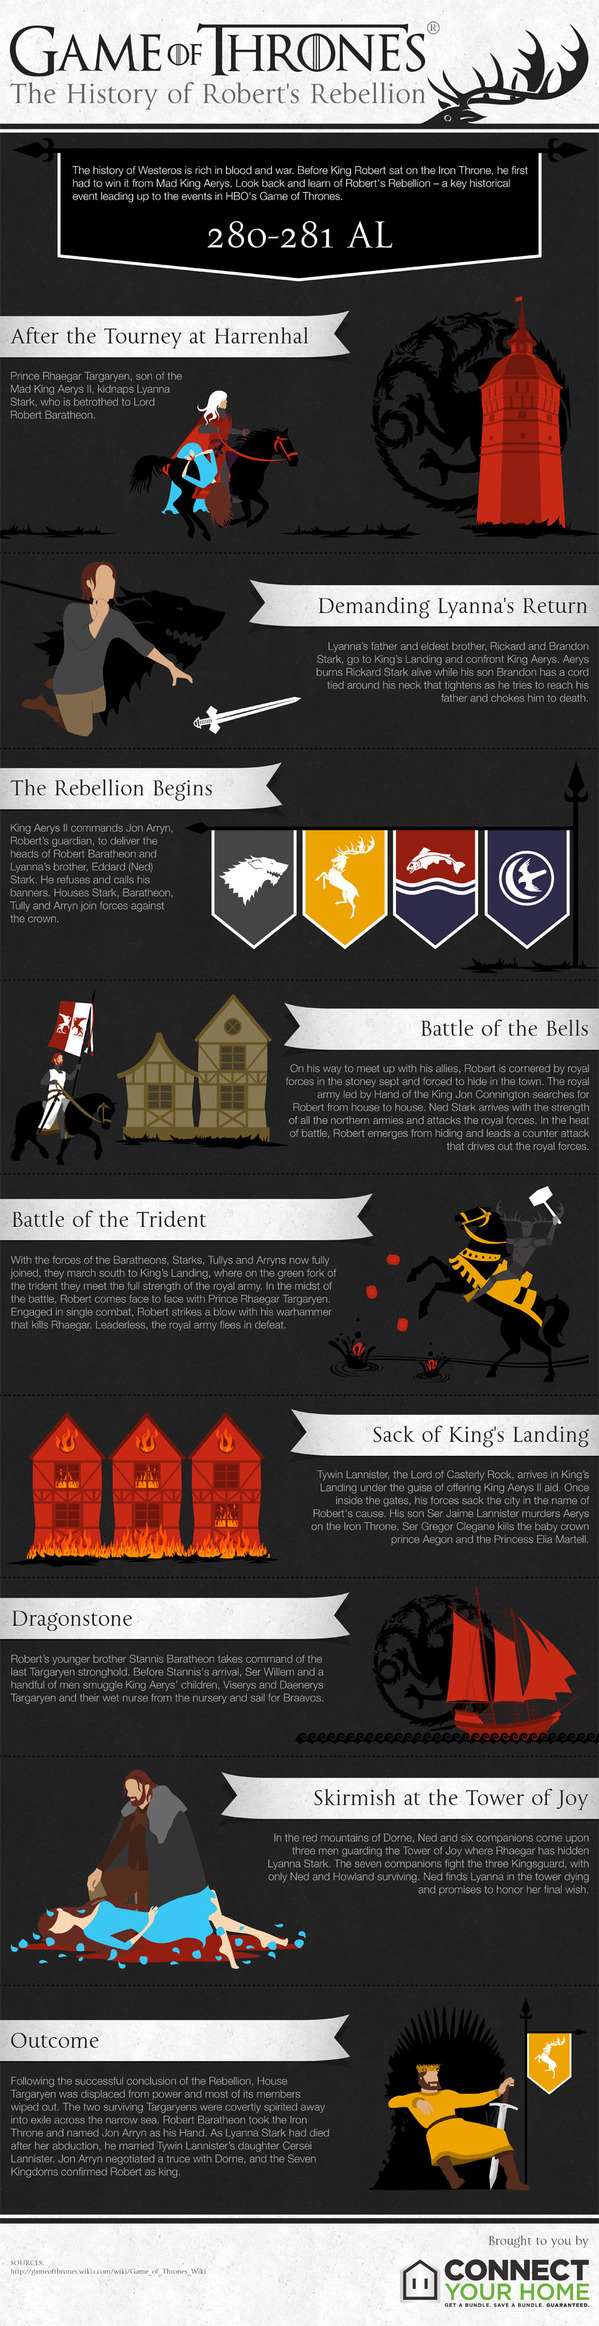 got-infographic_web.jpg